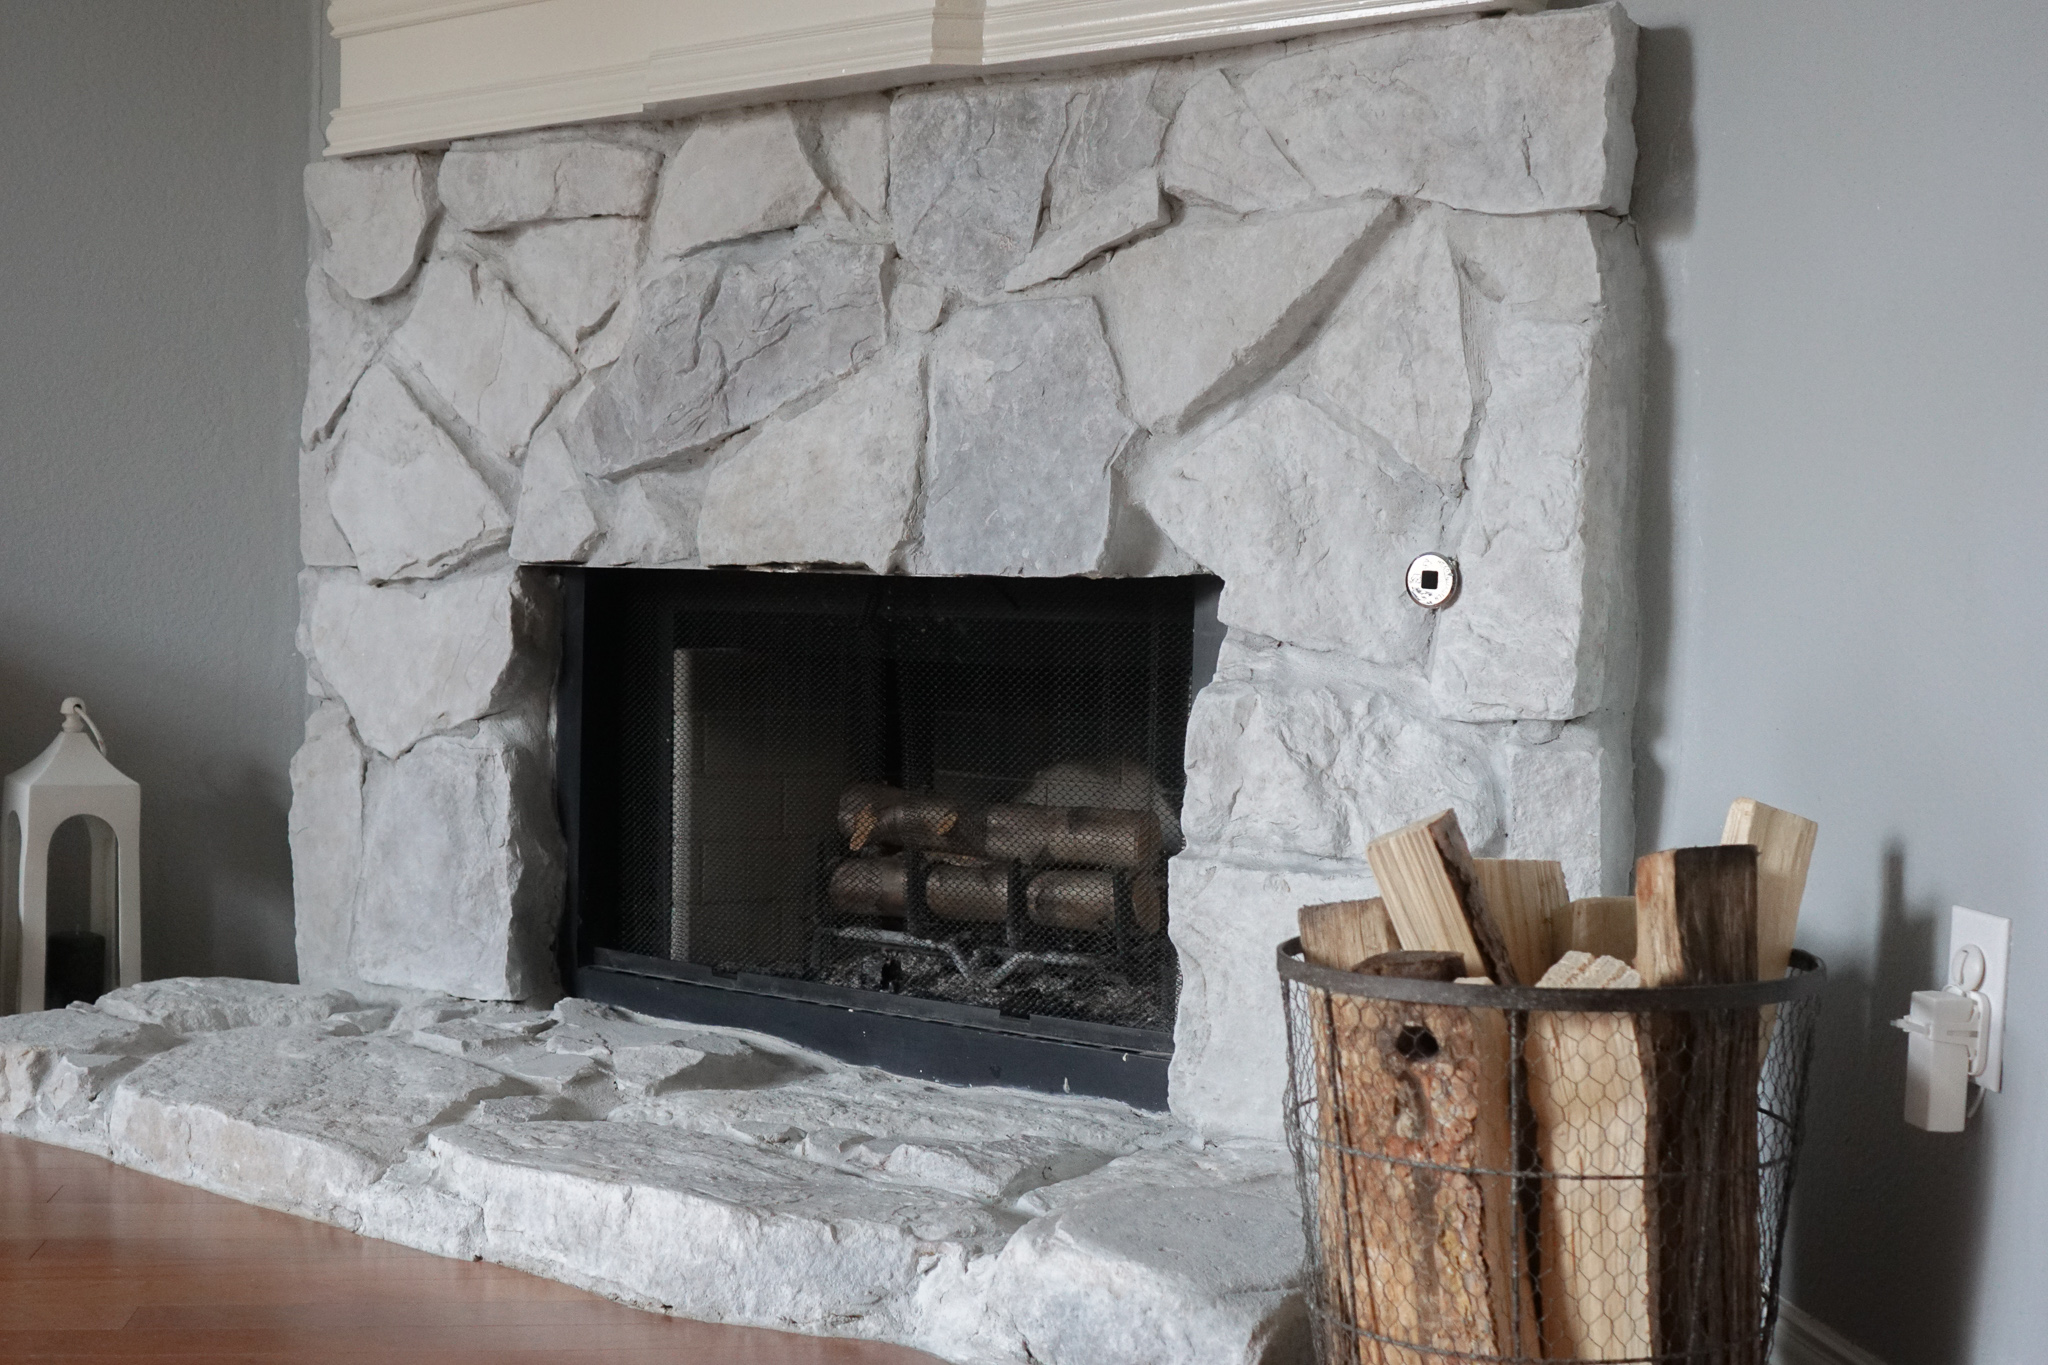 How to Whitewash a Stone Fireplace